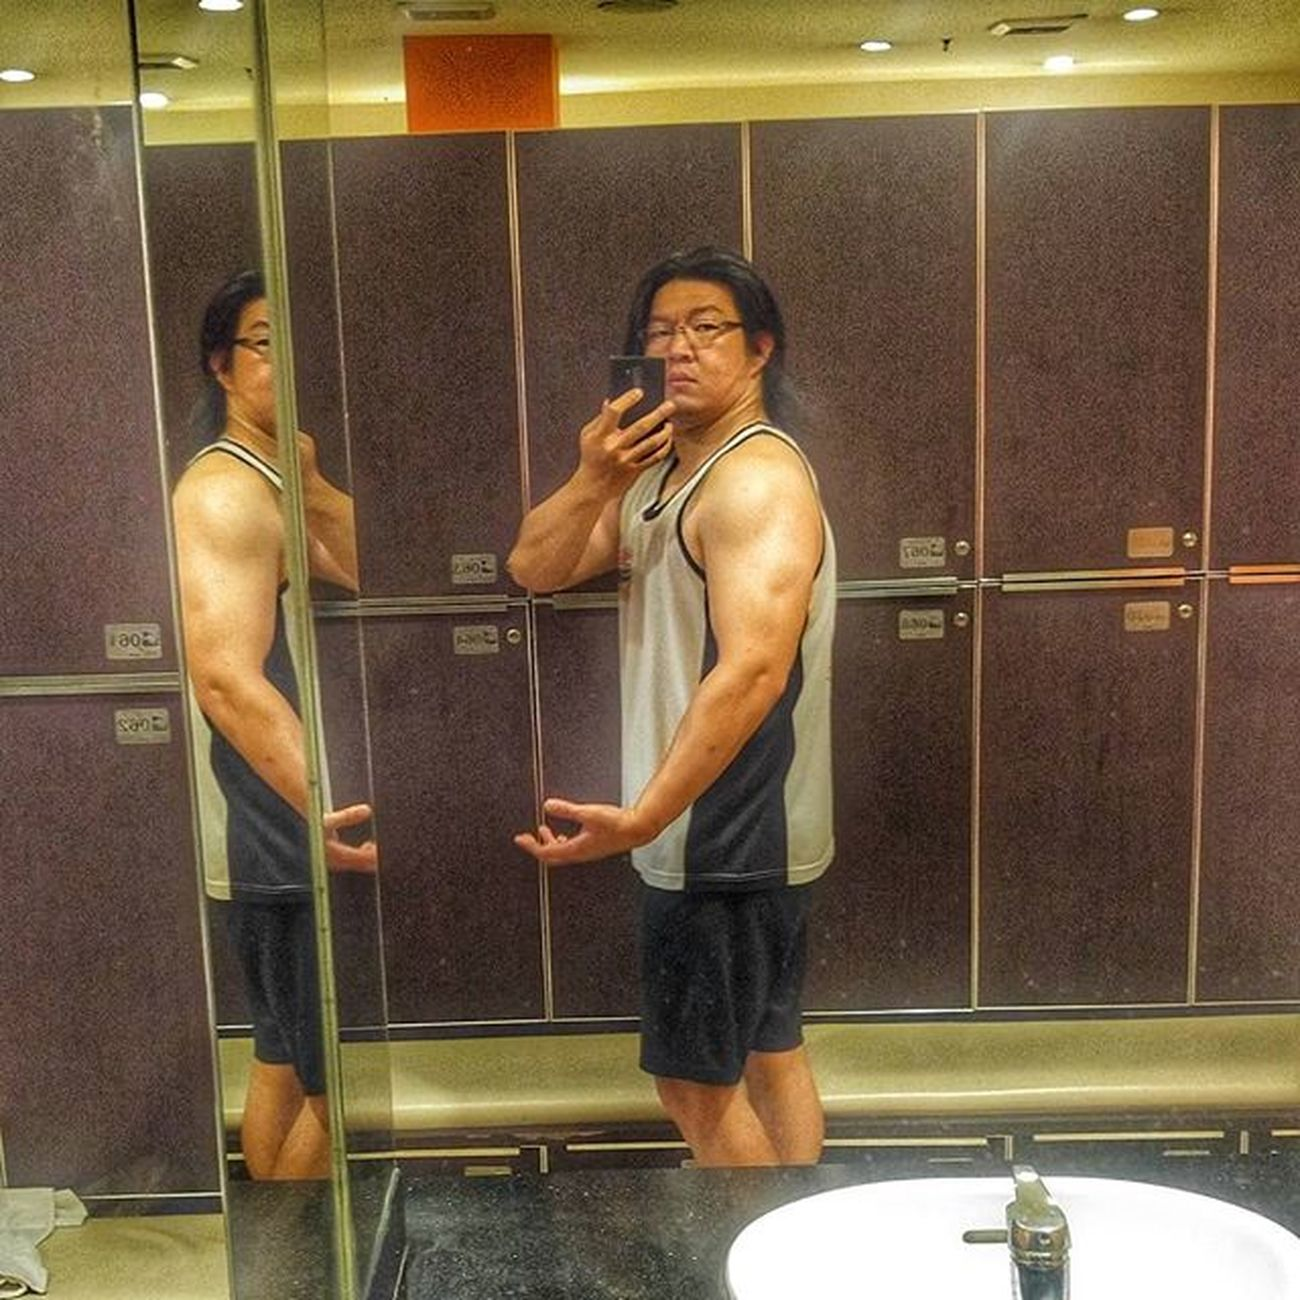 Sunday Workout Fitness Gym GymRat Workout Muscle Hypertrophy Healthylifestyle Val  2016 LGG4 LG  G4 Nopainnogain 😚